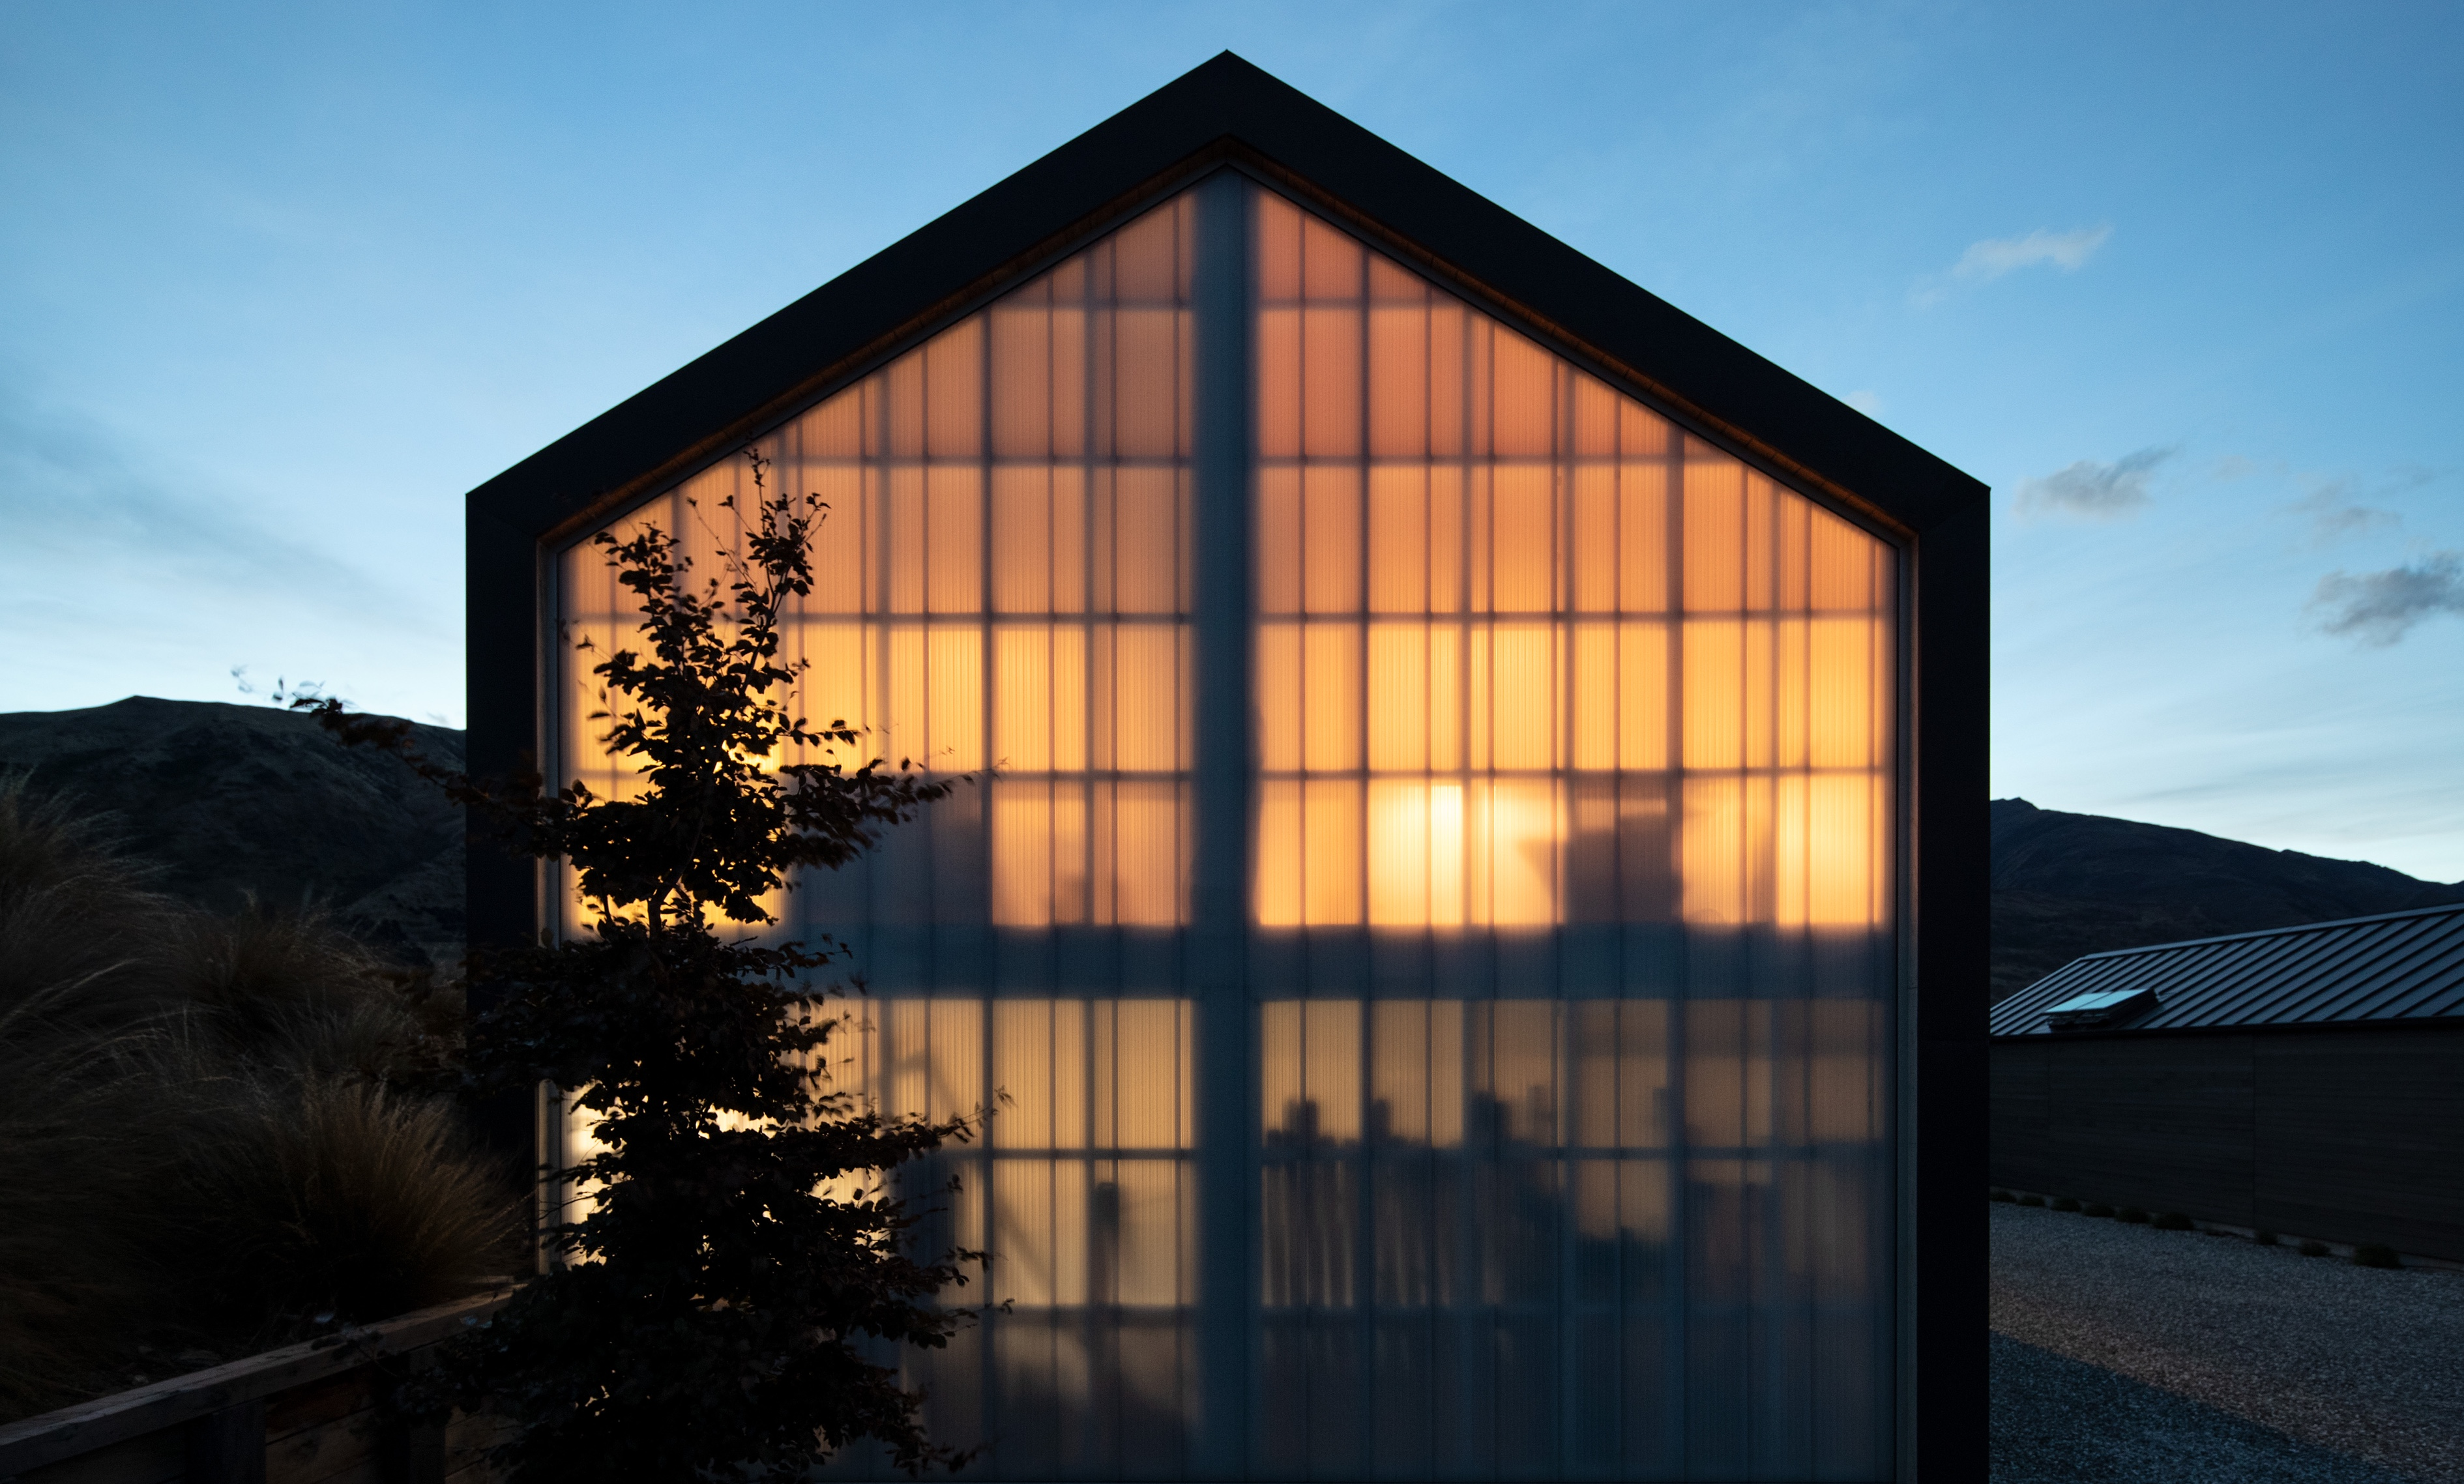 Exterior of Westmeadows Shed at night, with light shining through floor-to-sealing translucent polycarbonate